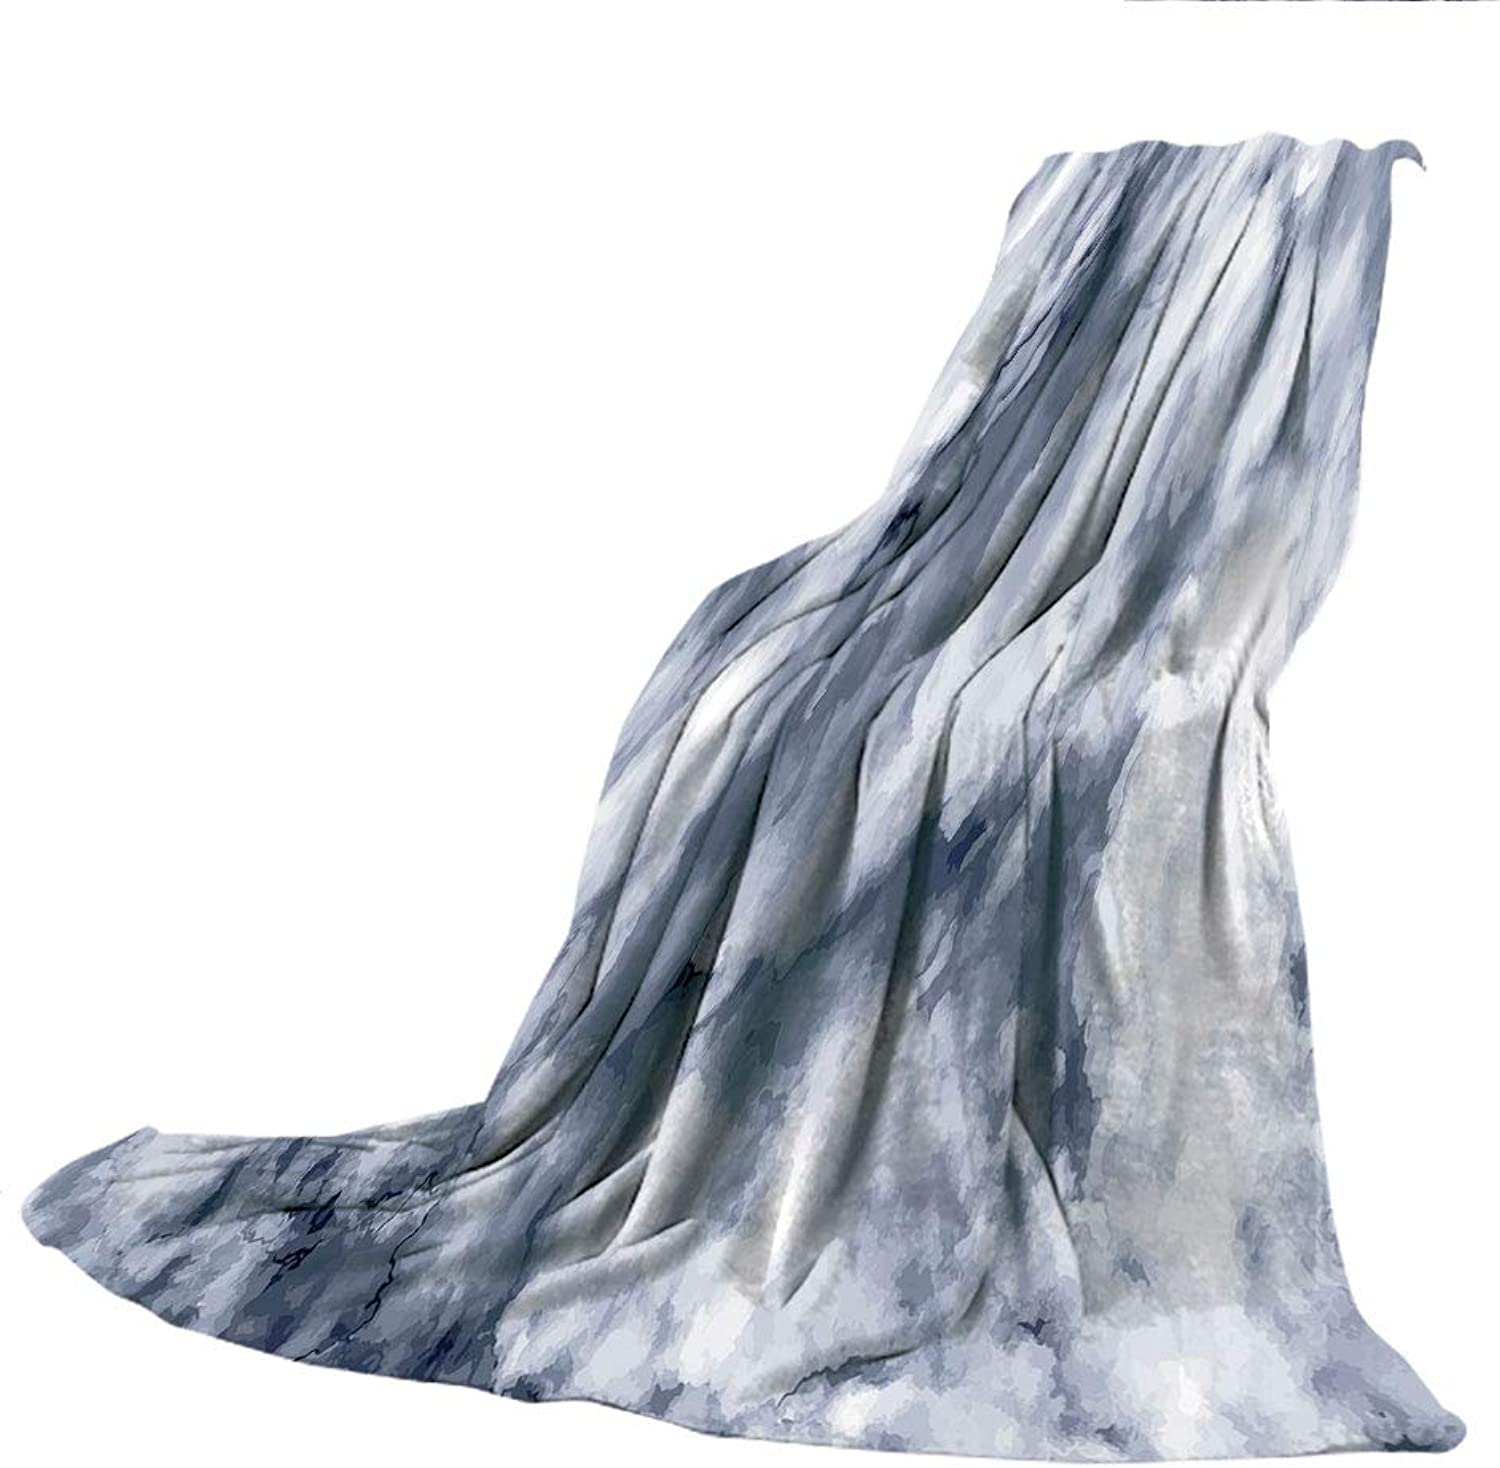 SCOCICI Blanket for Bed Couch Chair Fall Winter Spring Living Room,Marble,Cloudy Stylized Artistic Marble Pattern with Foggy Effects Abstract Display Decorative,Cadet bluee Dust,59.06  W x 86.62  H